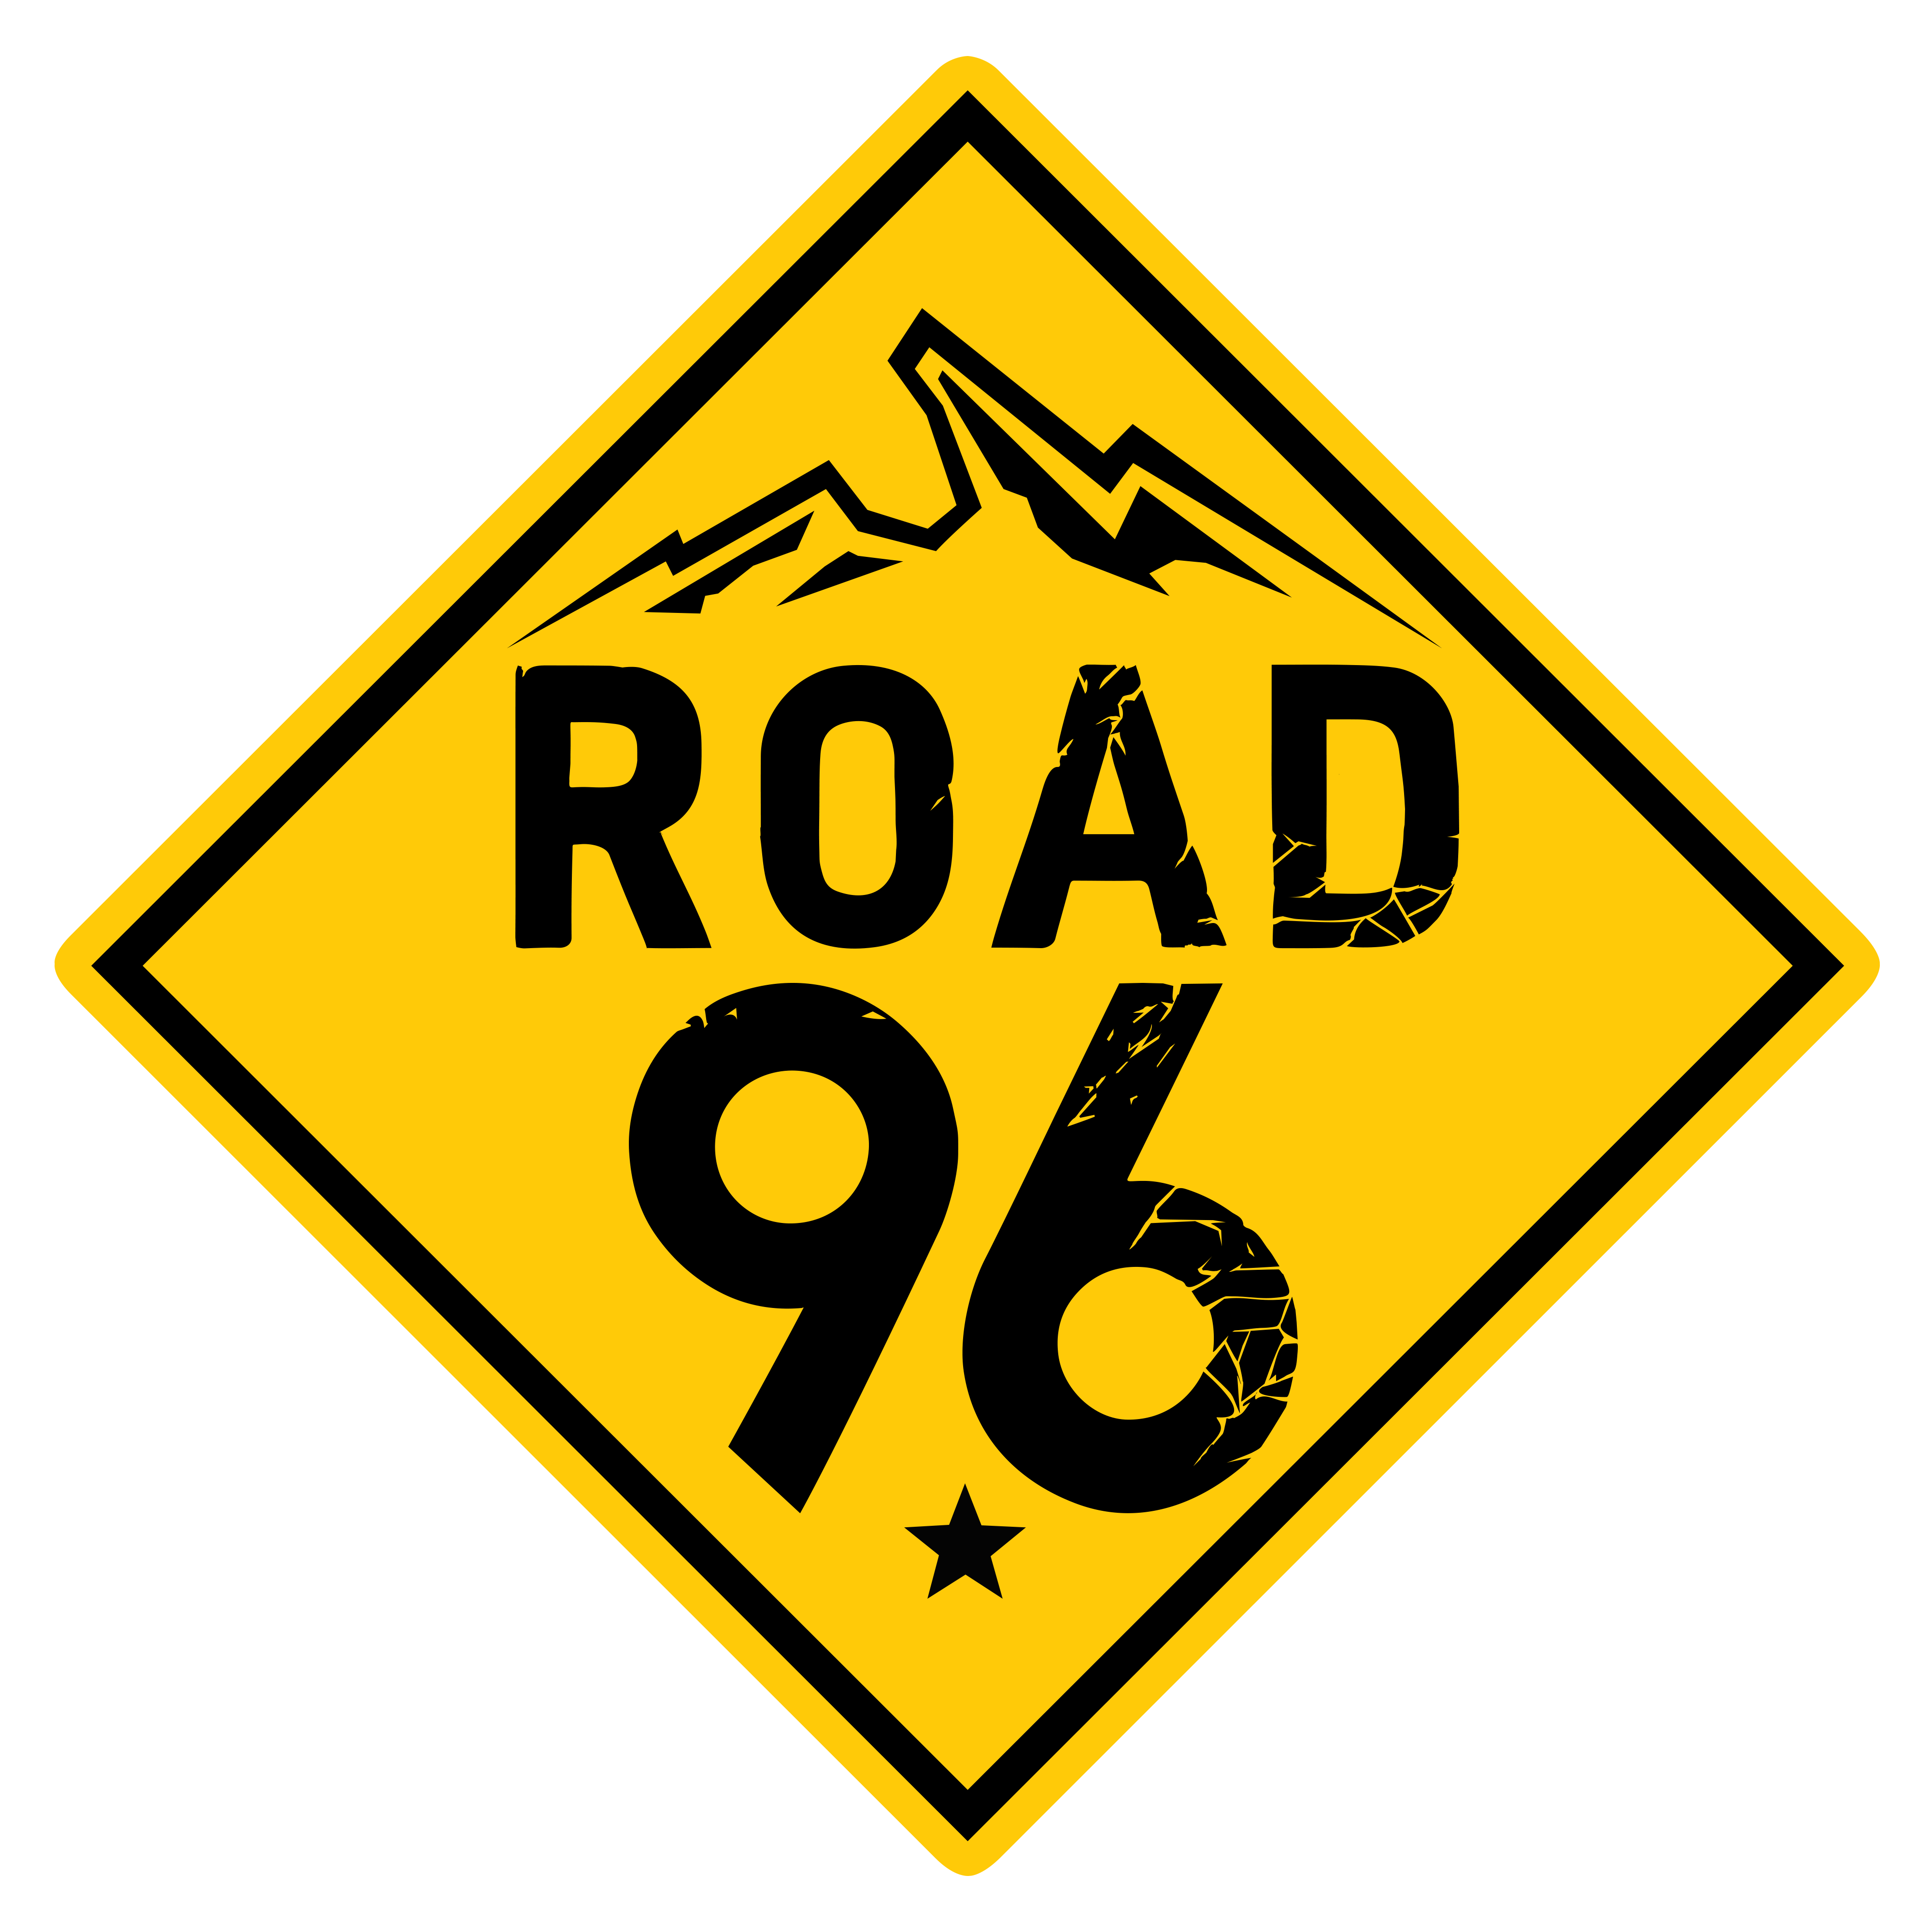 Ein anderer Take - Route 96